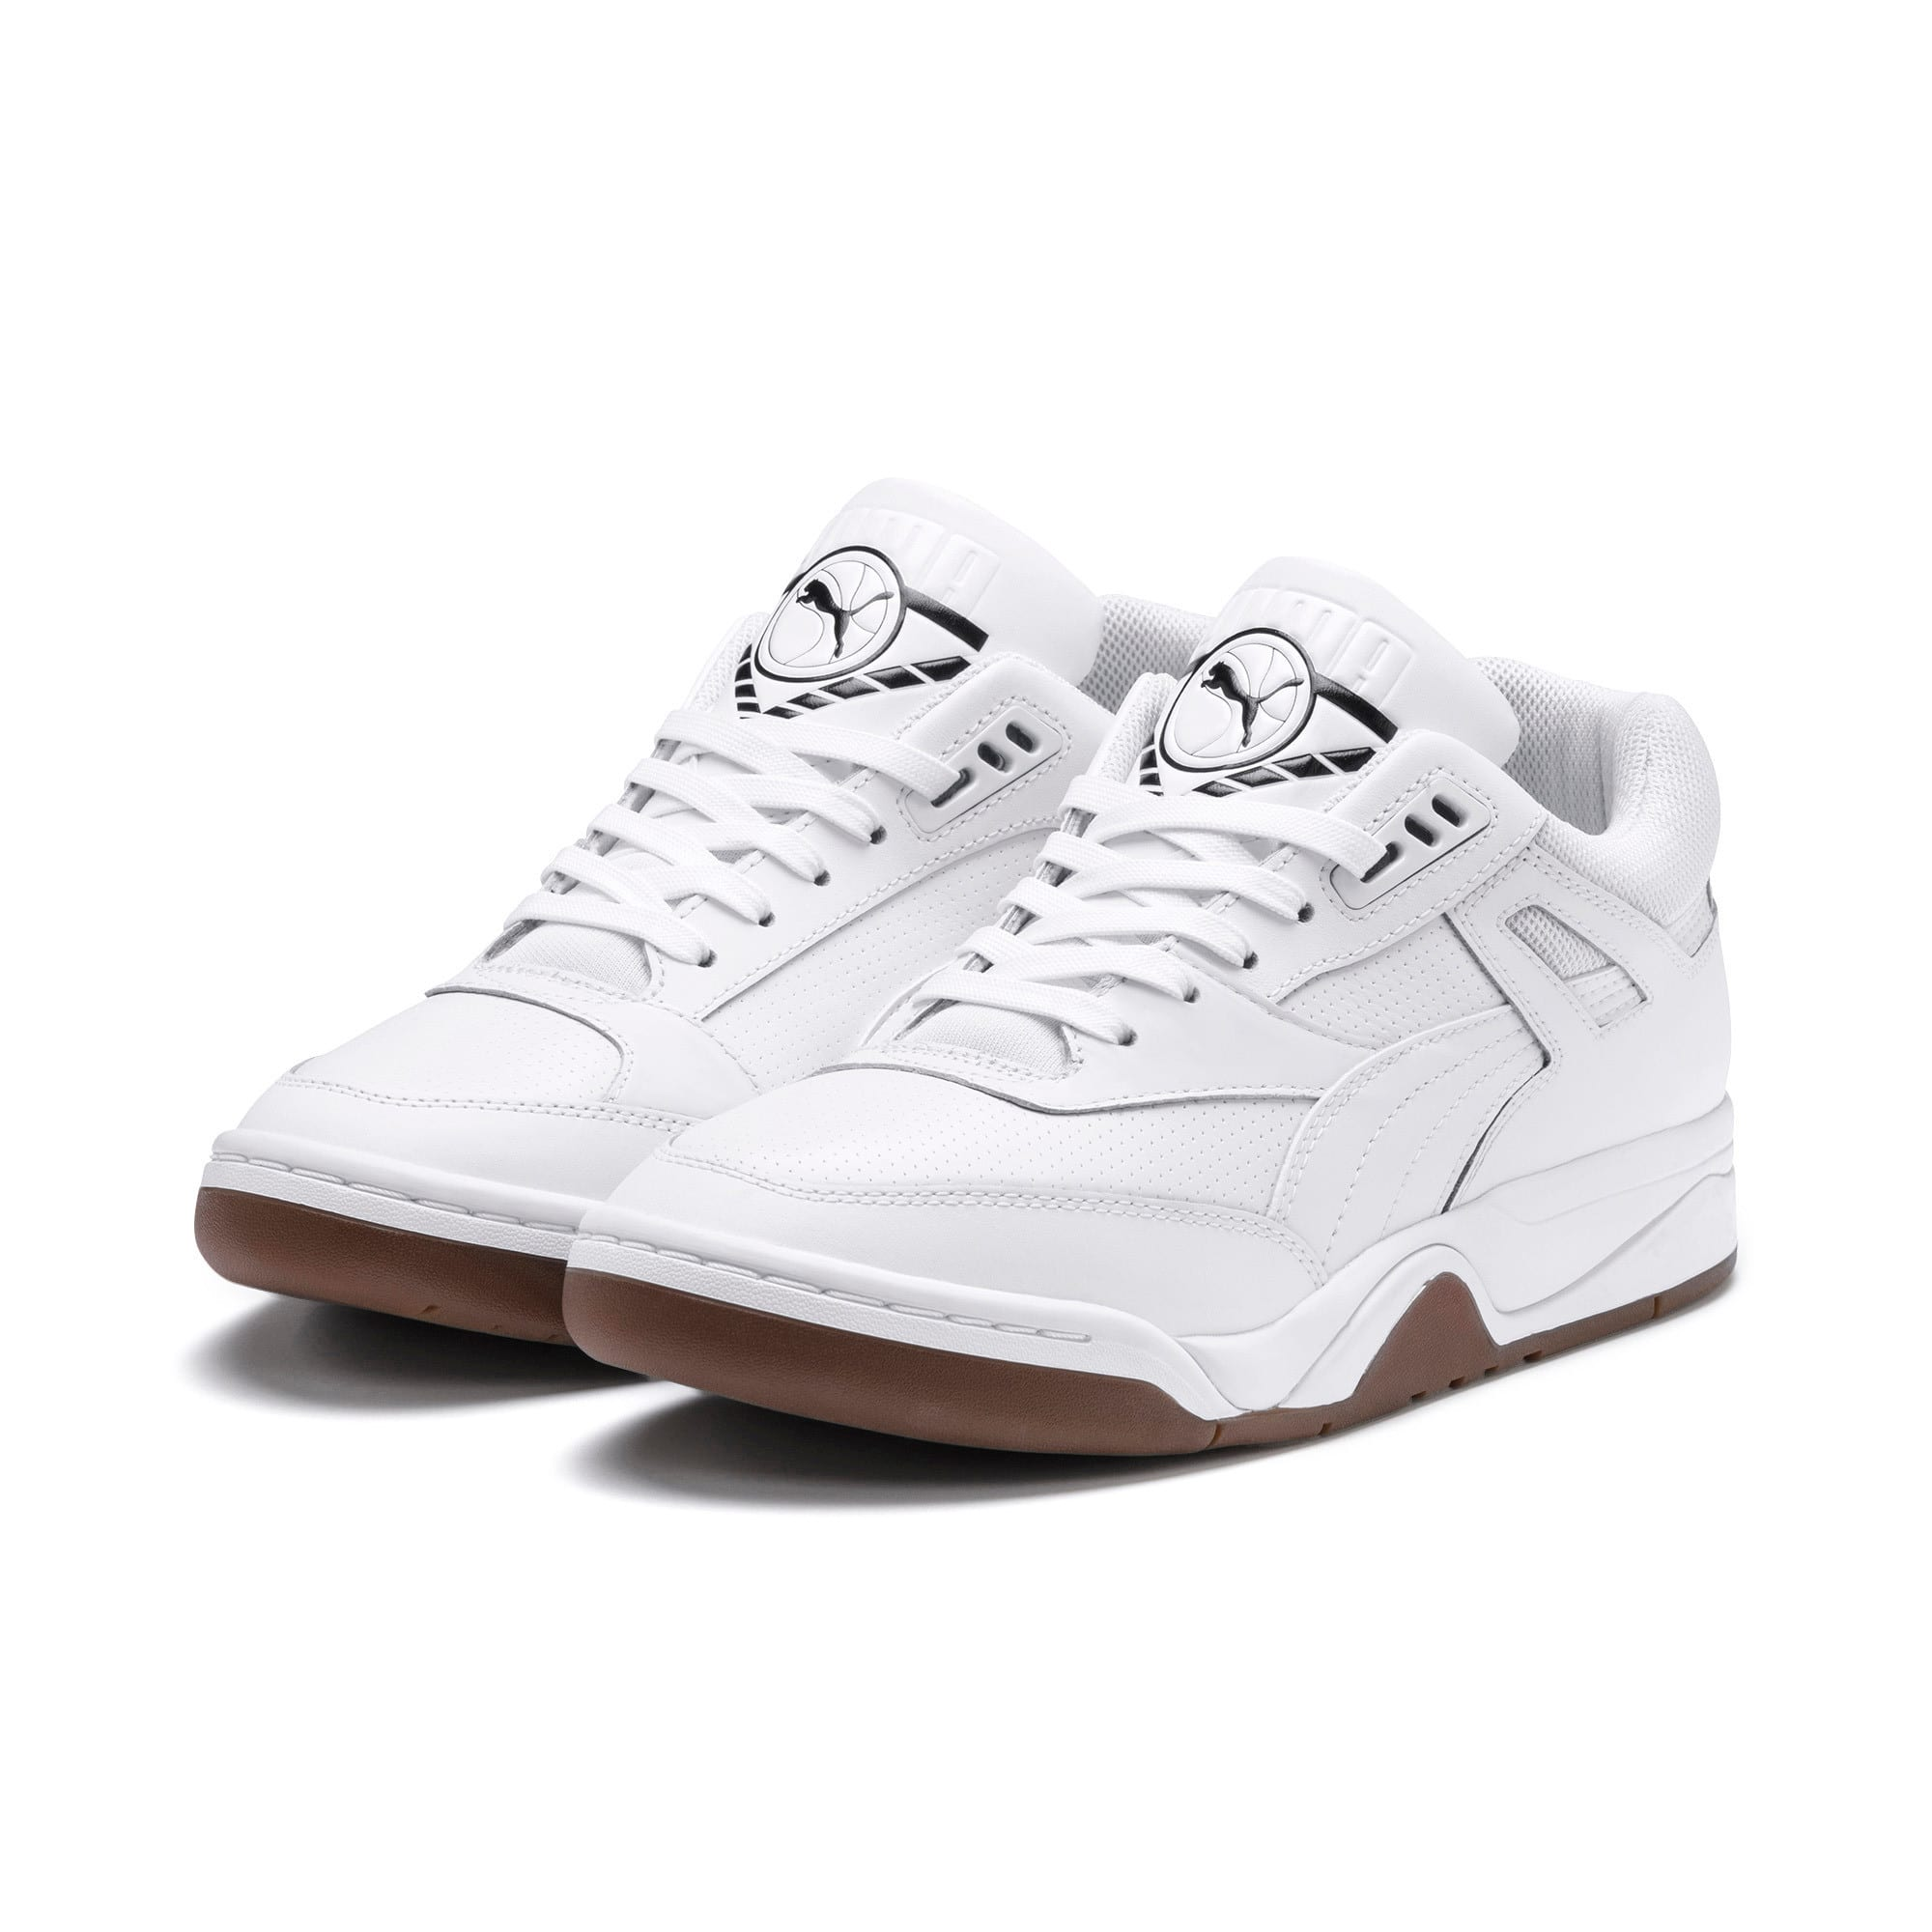 Anteprima 2 di Palace Guard Men's Basketball Trainers, Puma White-Puma White-Gum, medio